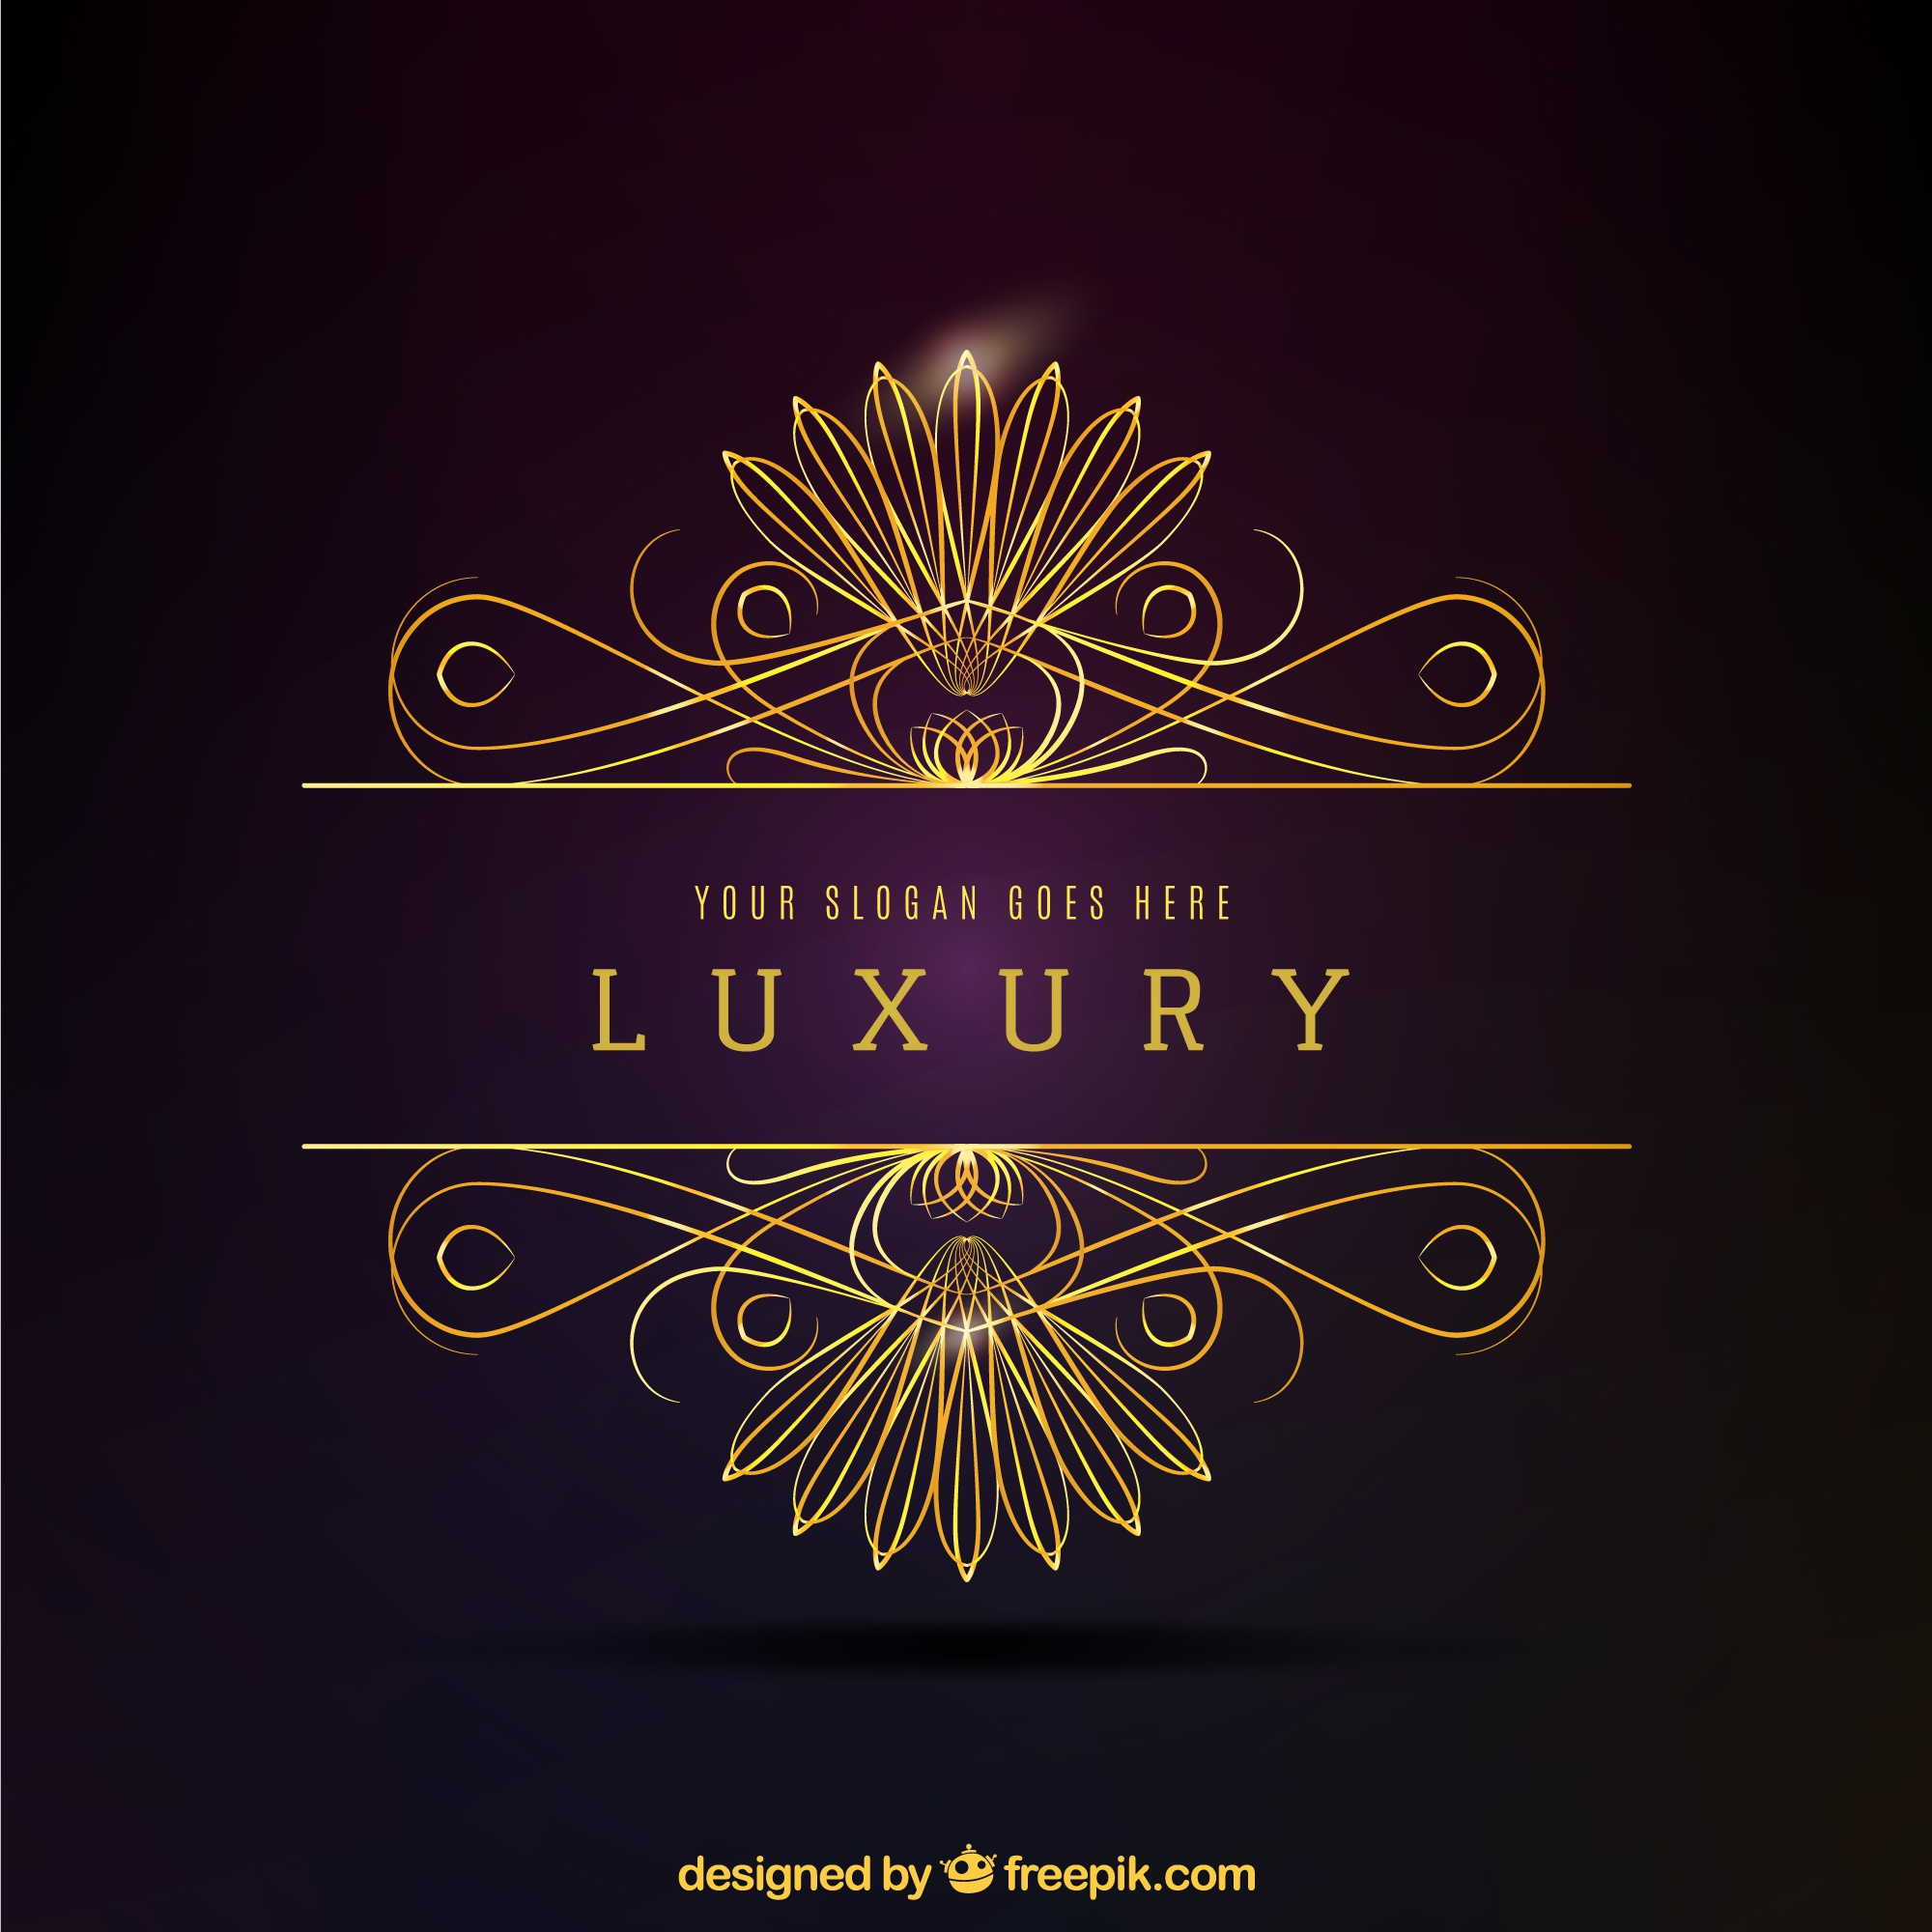 Logotipo decorativo dourado luxuoso